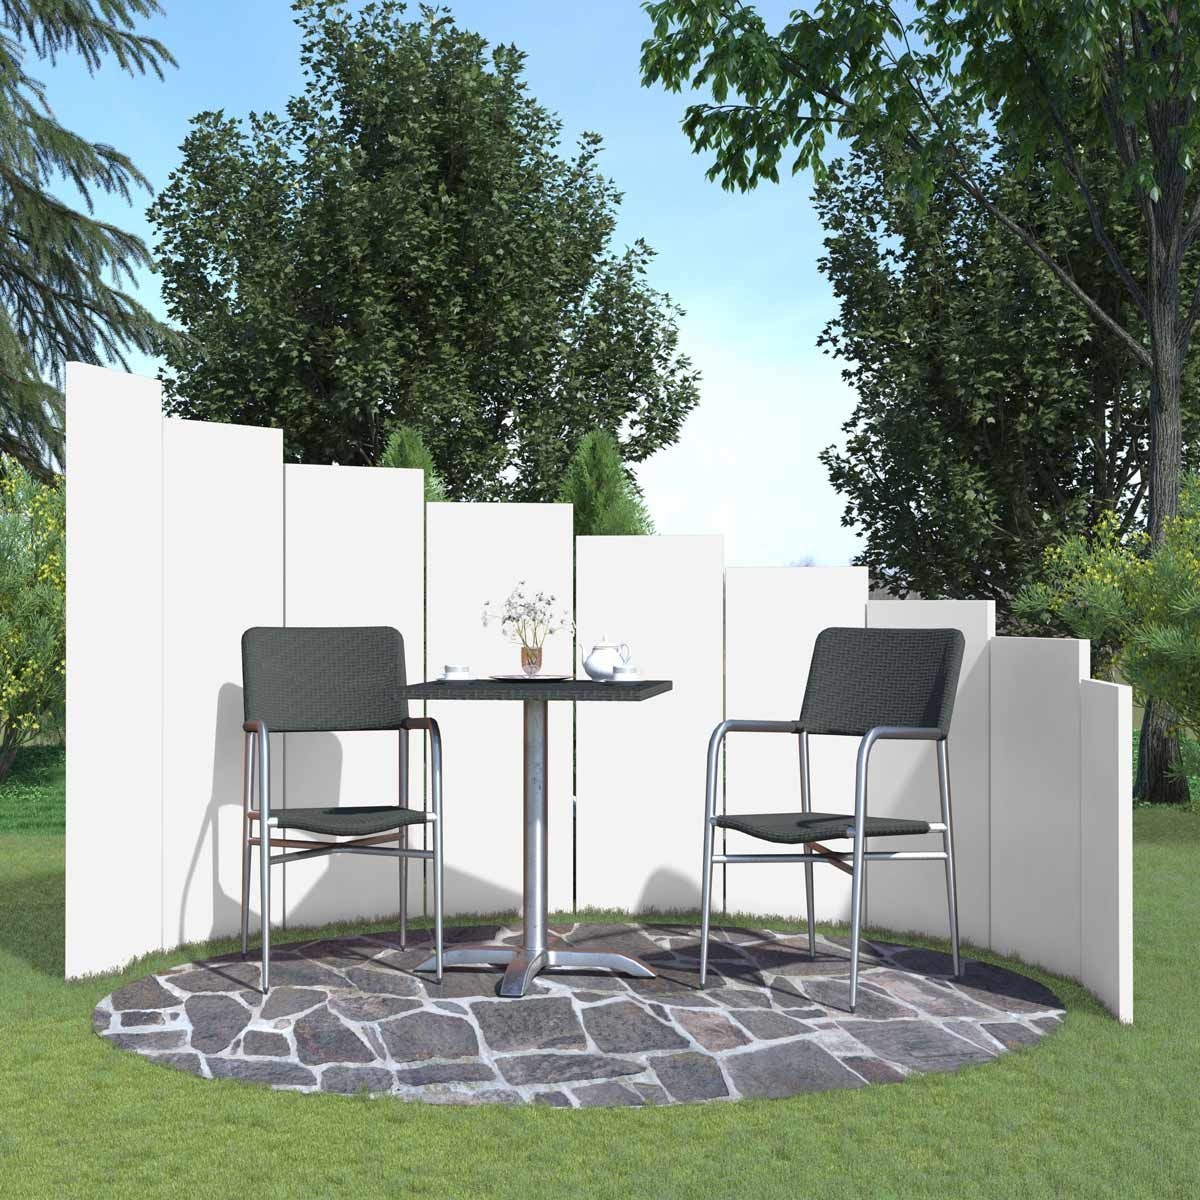 Systemzaun Palisade Als Sichtschutz Stele X1f31e Outdoor Furniture Sets Outdoor Decor Outdoor Furniture